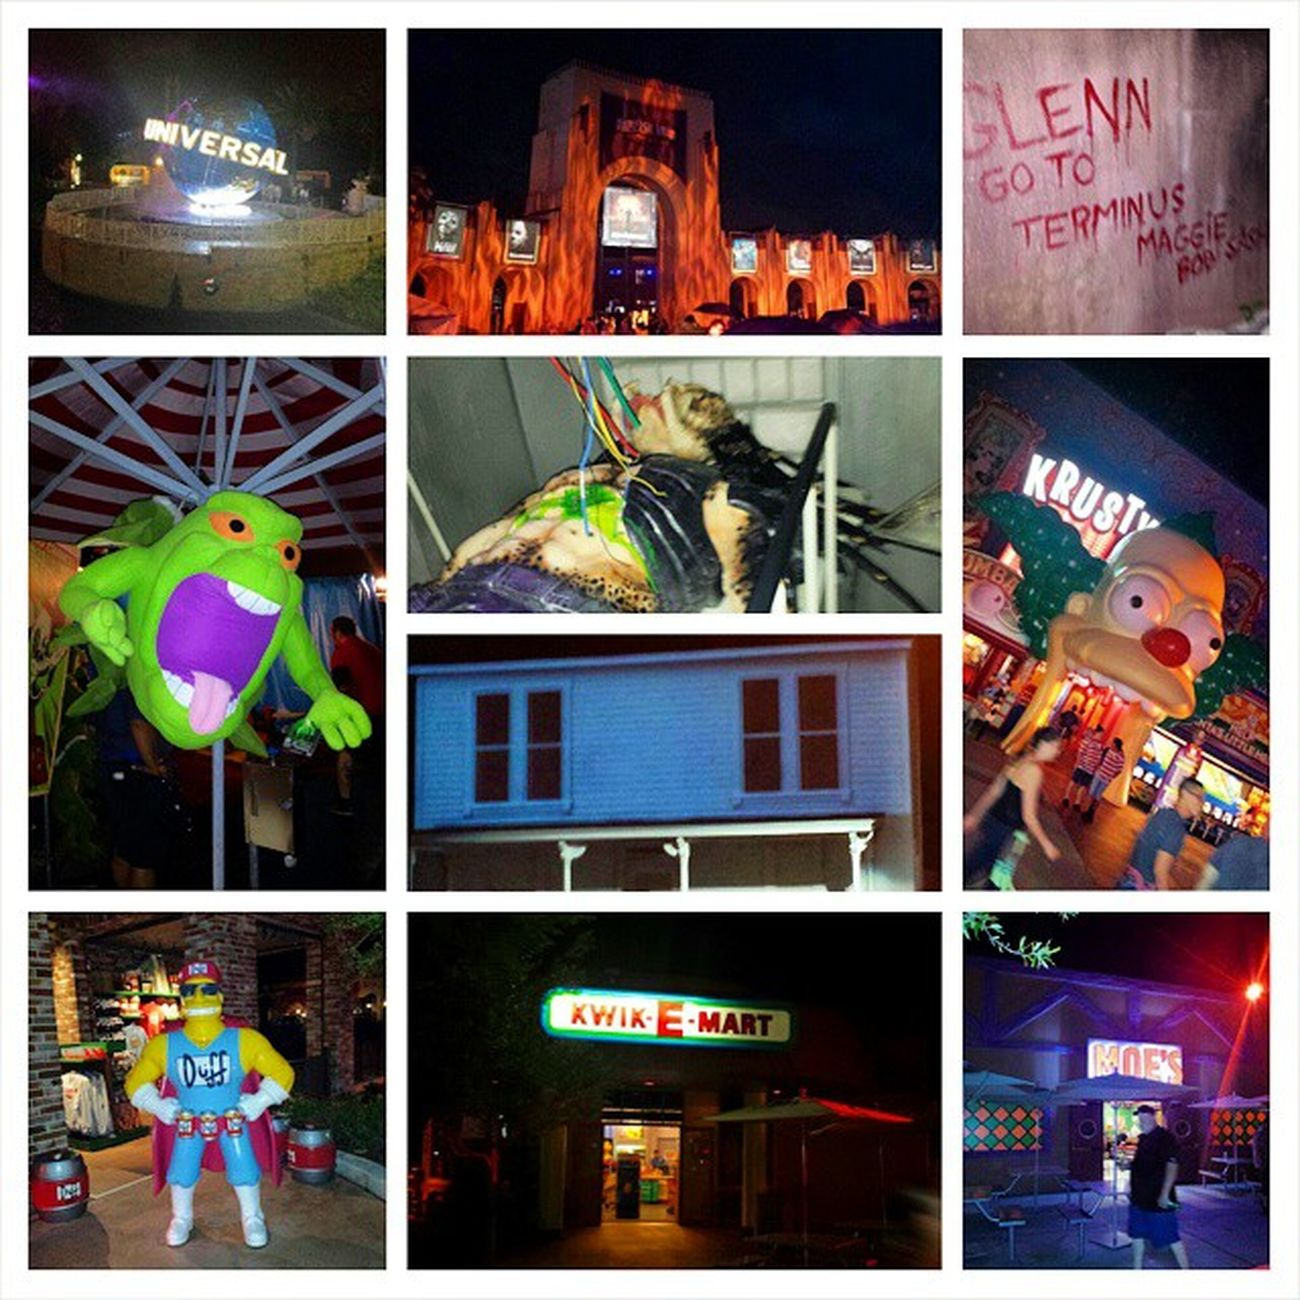 Had a blast at Universalstudios Orlando Florida Fl Halloweenhorrornight Hhn Hhn24 was able to go Friday and Saturday stood in some long line but got Scared Thewalkingdead Slimmer Ghostbusters Alien Predator Alienvspredator Halloween Michaelmyers TheSimpsons Krusty Duffman